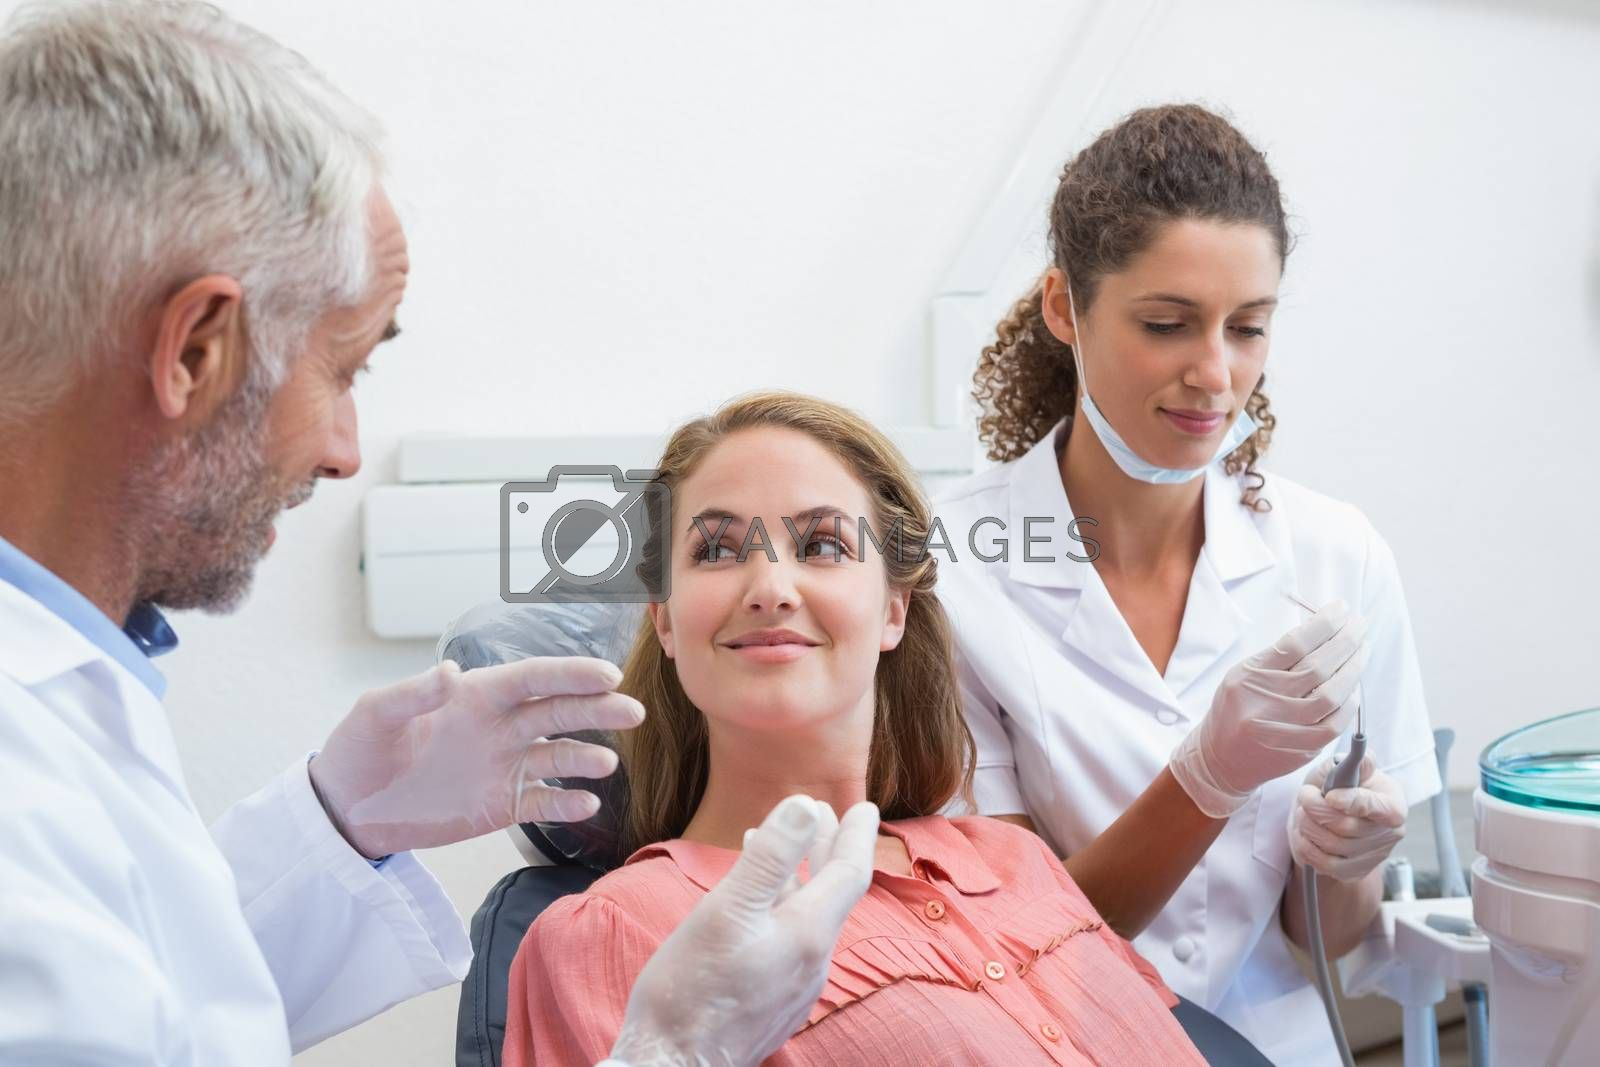 Dentist talking with patient while nurse prepares the tools at the dental clinic